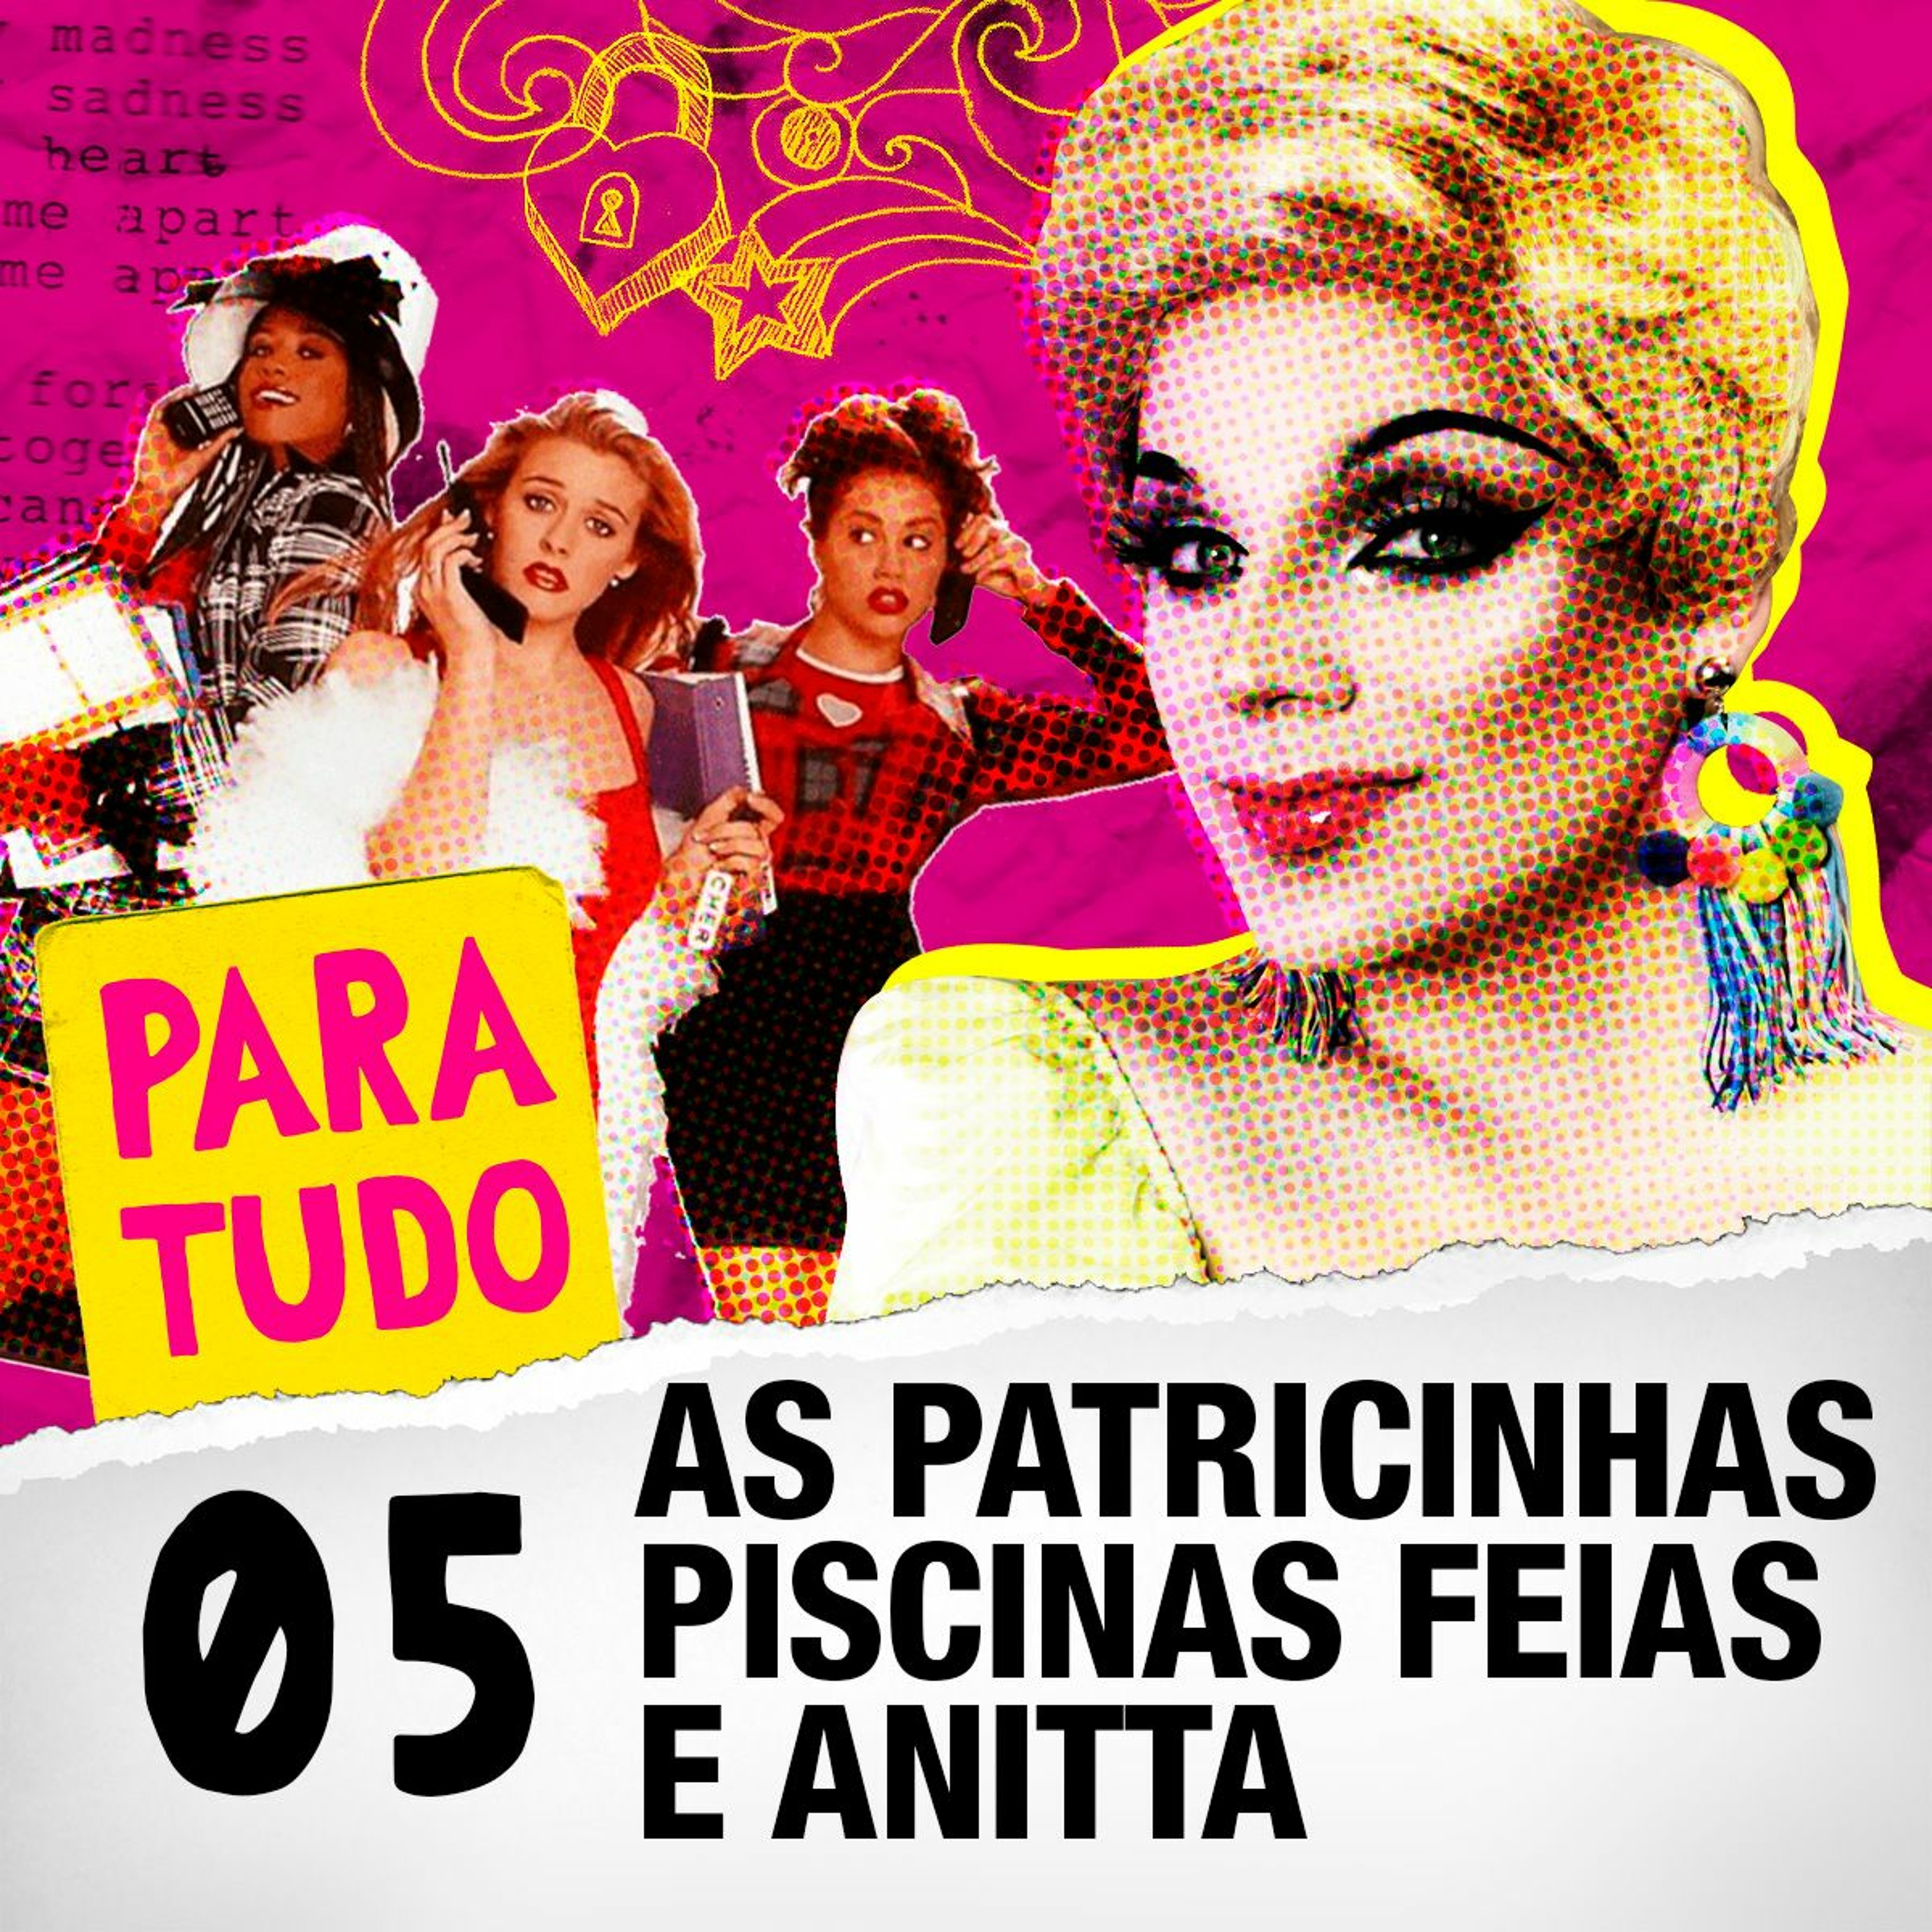 #05 As Patricinhas, Piscinas Feias e Anitta